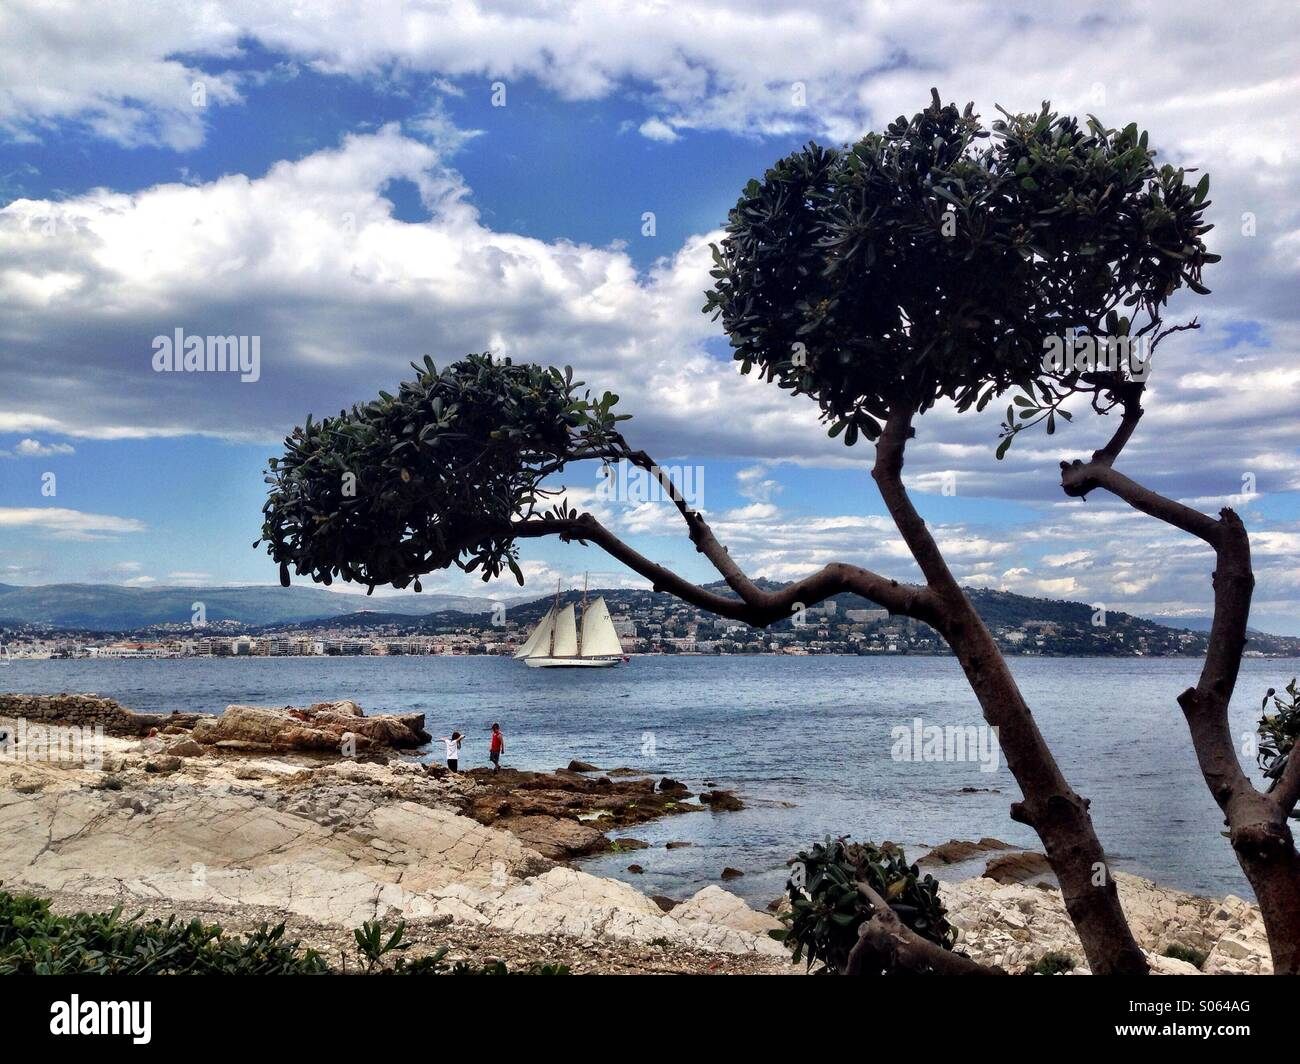 Cannes France Photo Stock